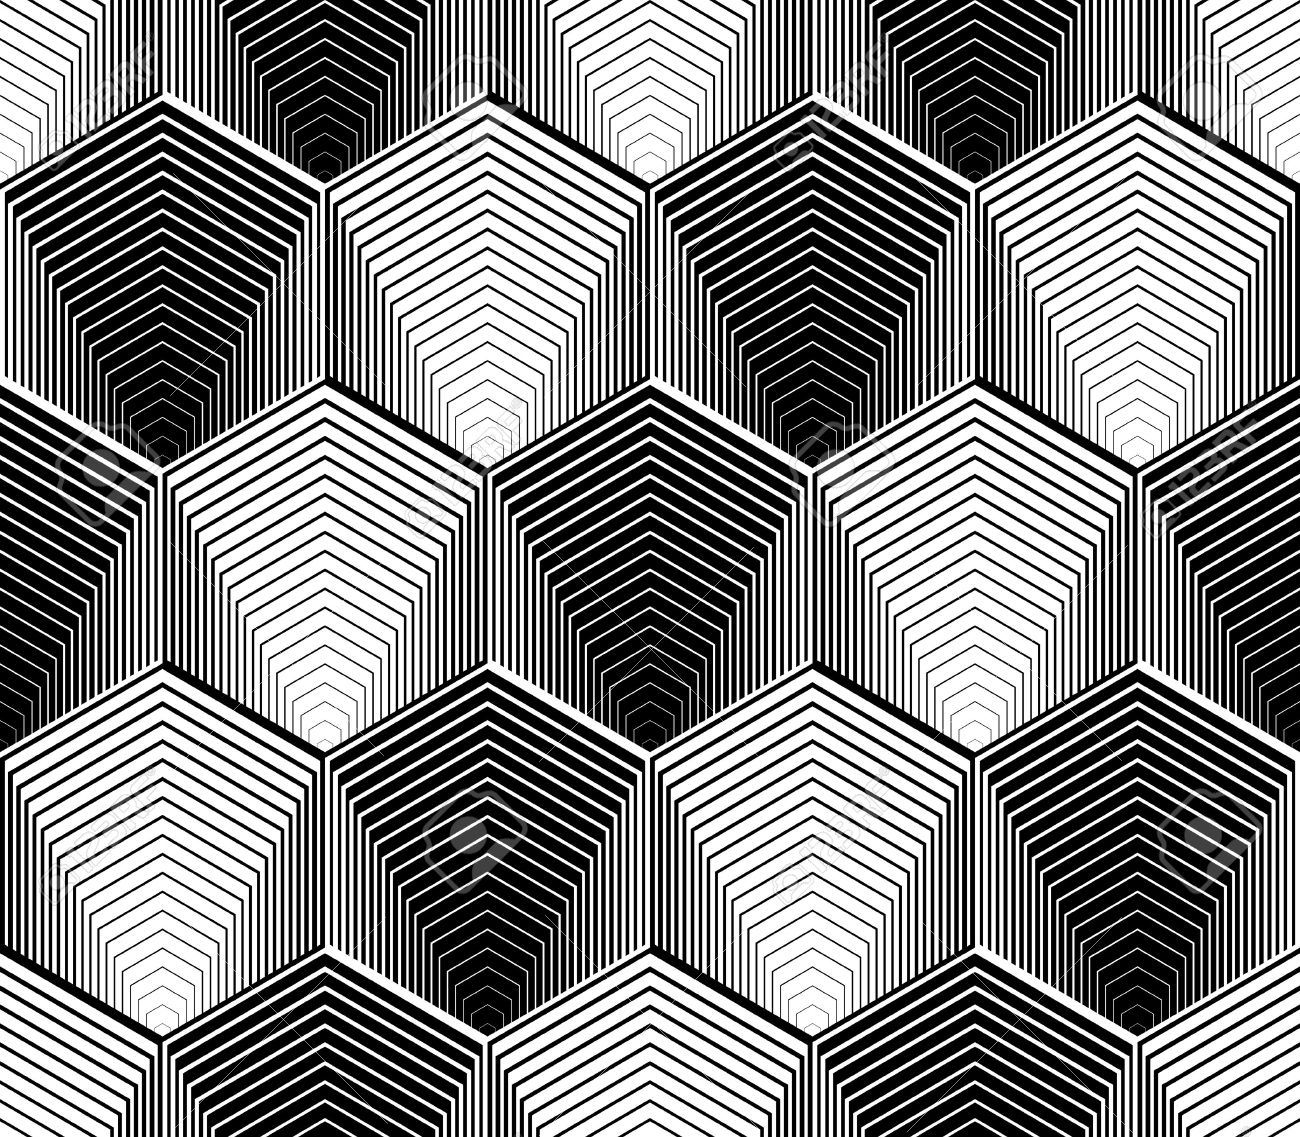 Design seamless monochrome hexagon geometric pattern abstract striped zigzag background vector art no